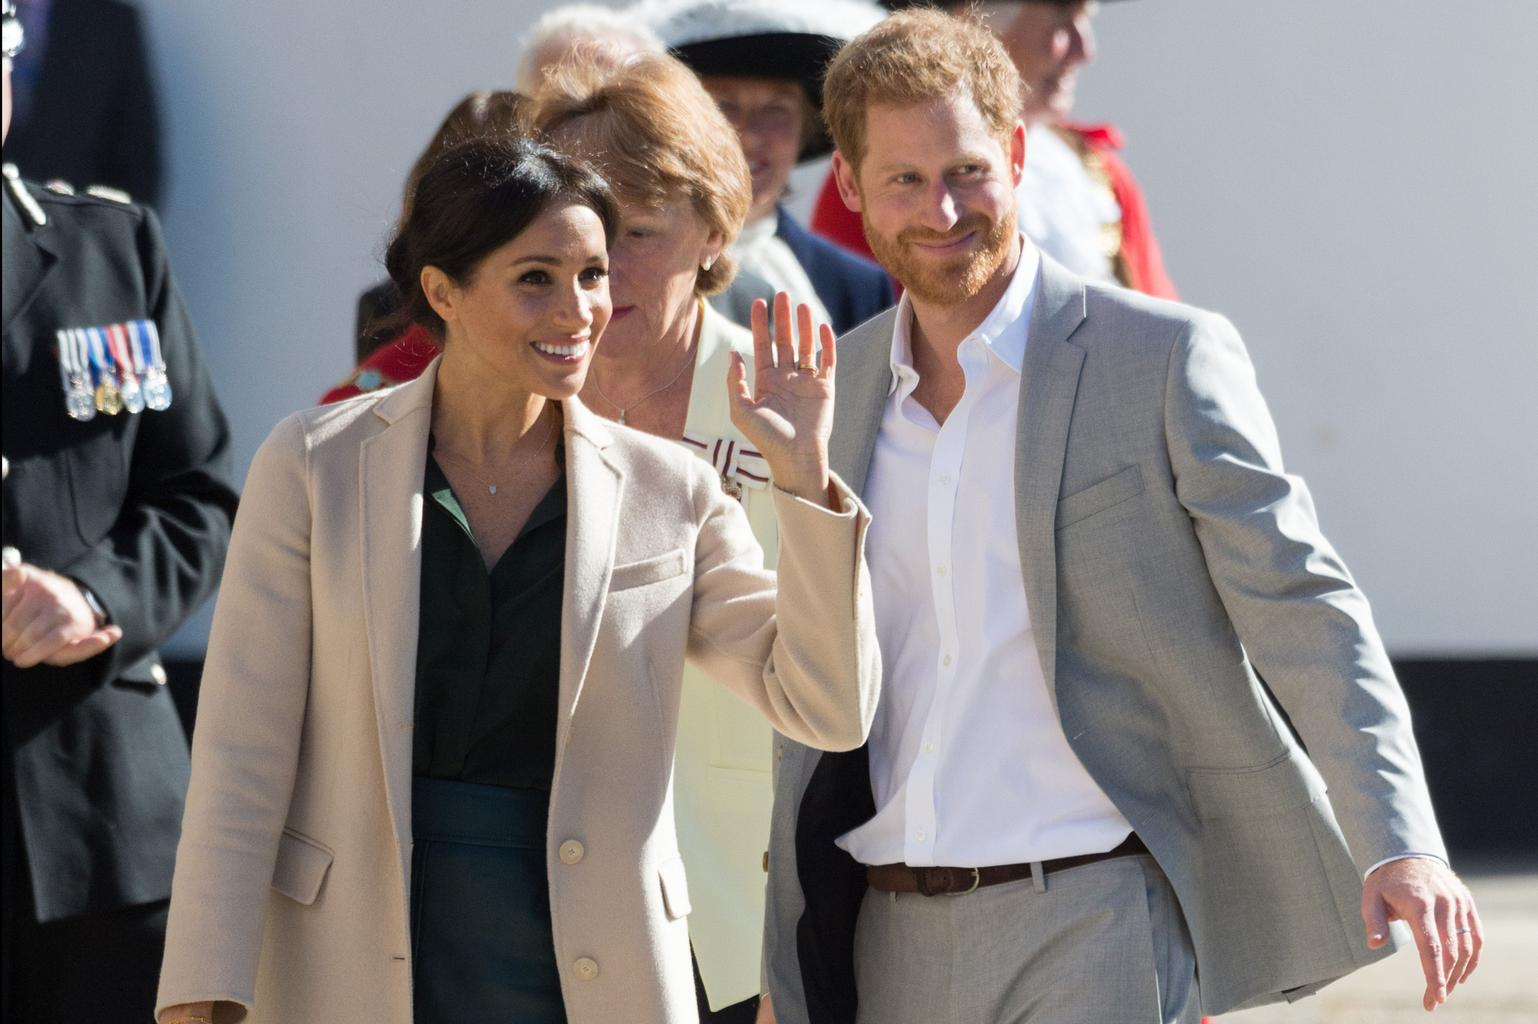 Meghan Markle actually hinted at her pregnancy three weeks ago